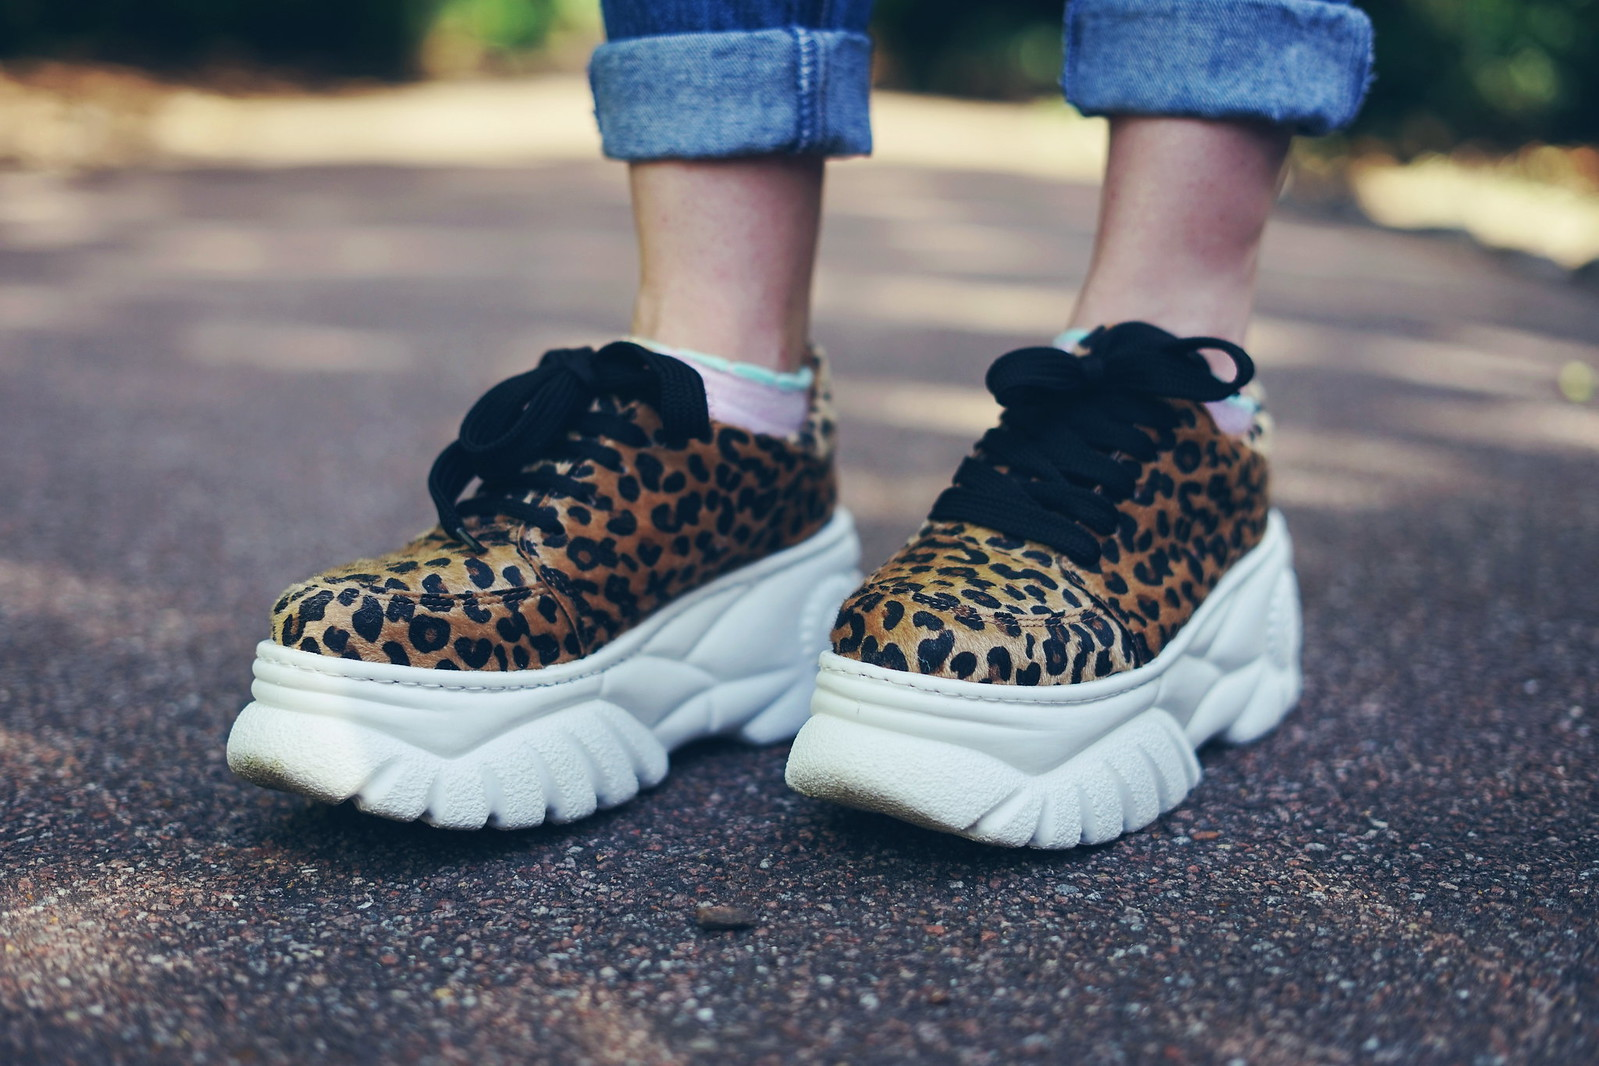 Leopard Platform Trainers and 90s Mom Jeans